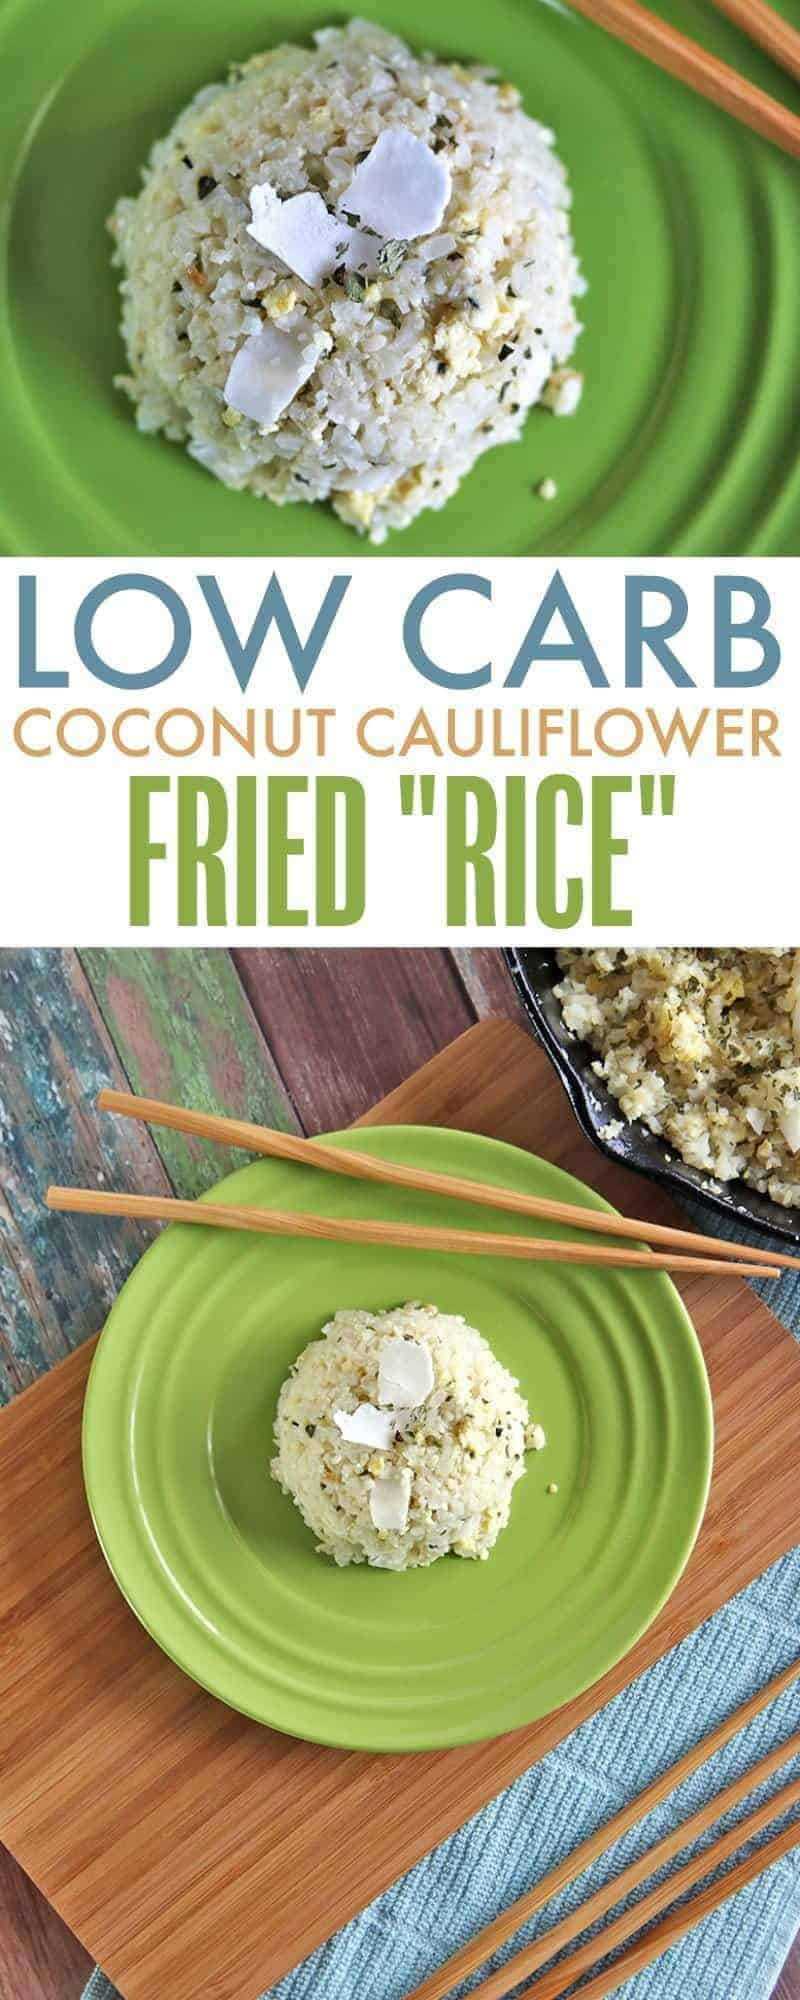 Low Carb Coconut Cauliflower Fried 'Rice'. This grain-free version of fried rice has the same texture as traditional fried rice but with the nutritional power of cauliflower and coconut.